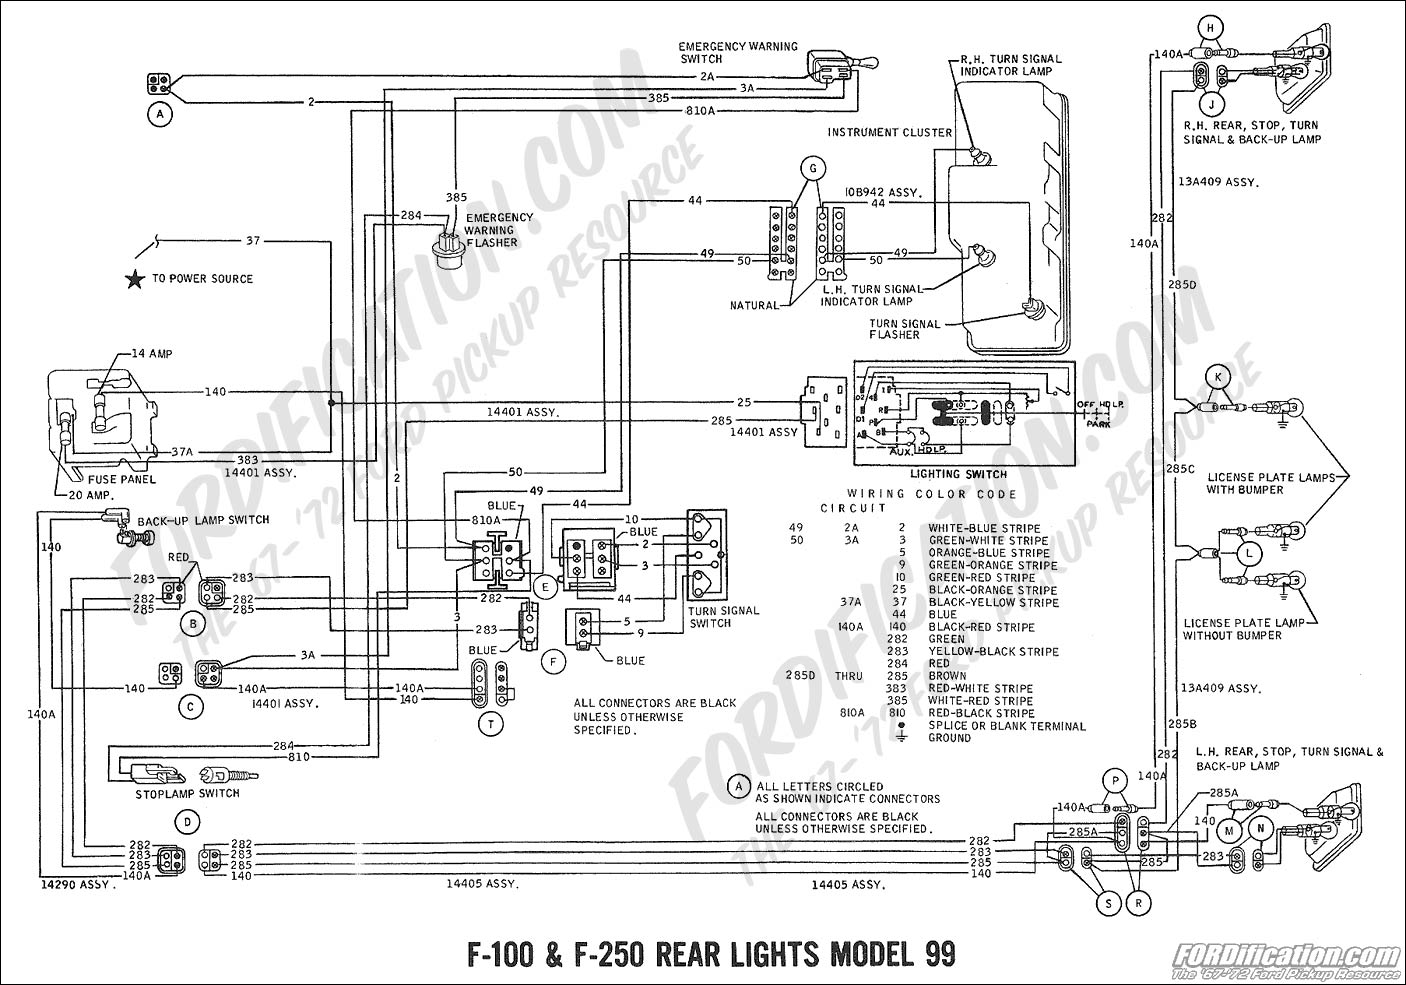 99 Civic Wiring Diagram Courtesy Lights L21935. 99 Civic Wiring Diagram Courtesy Lights L21935. Dodge. 2002 Dodge Ram 1500 Instrument Cluster Wiring Diagram At Justdesktopwallpapers.com